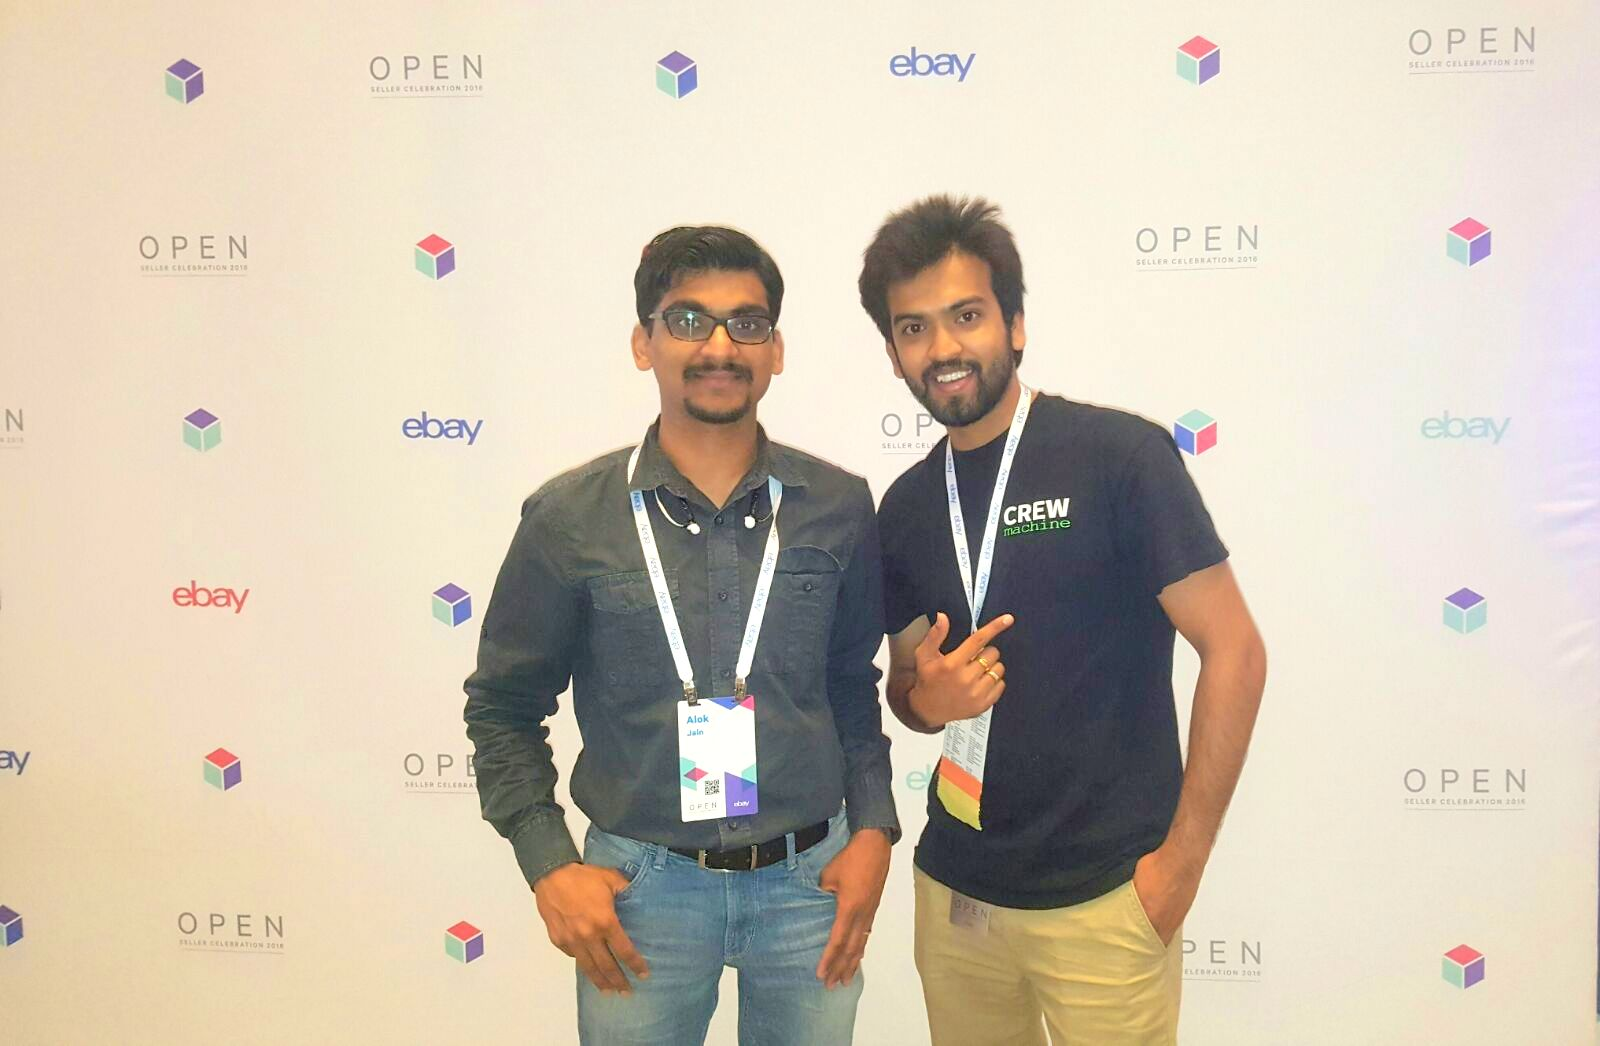 Alok and Vaibhav at eBay OPEN 2016